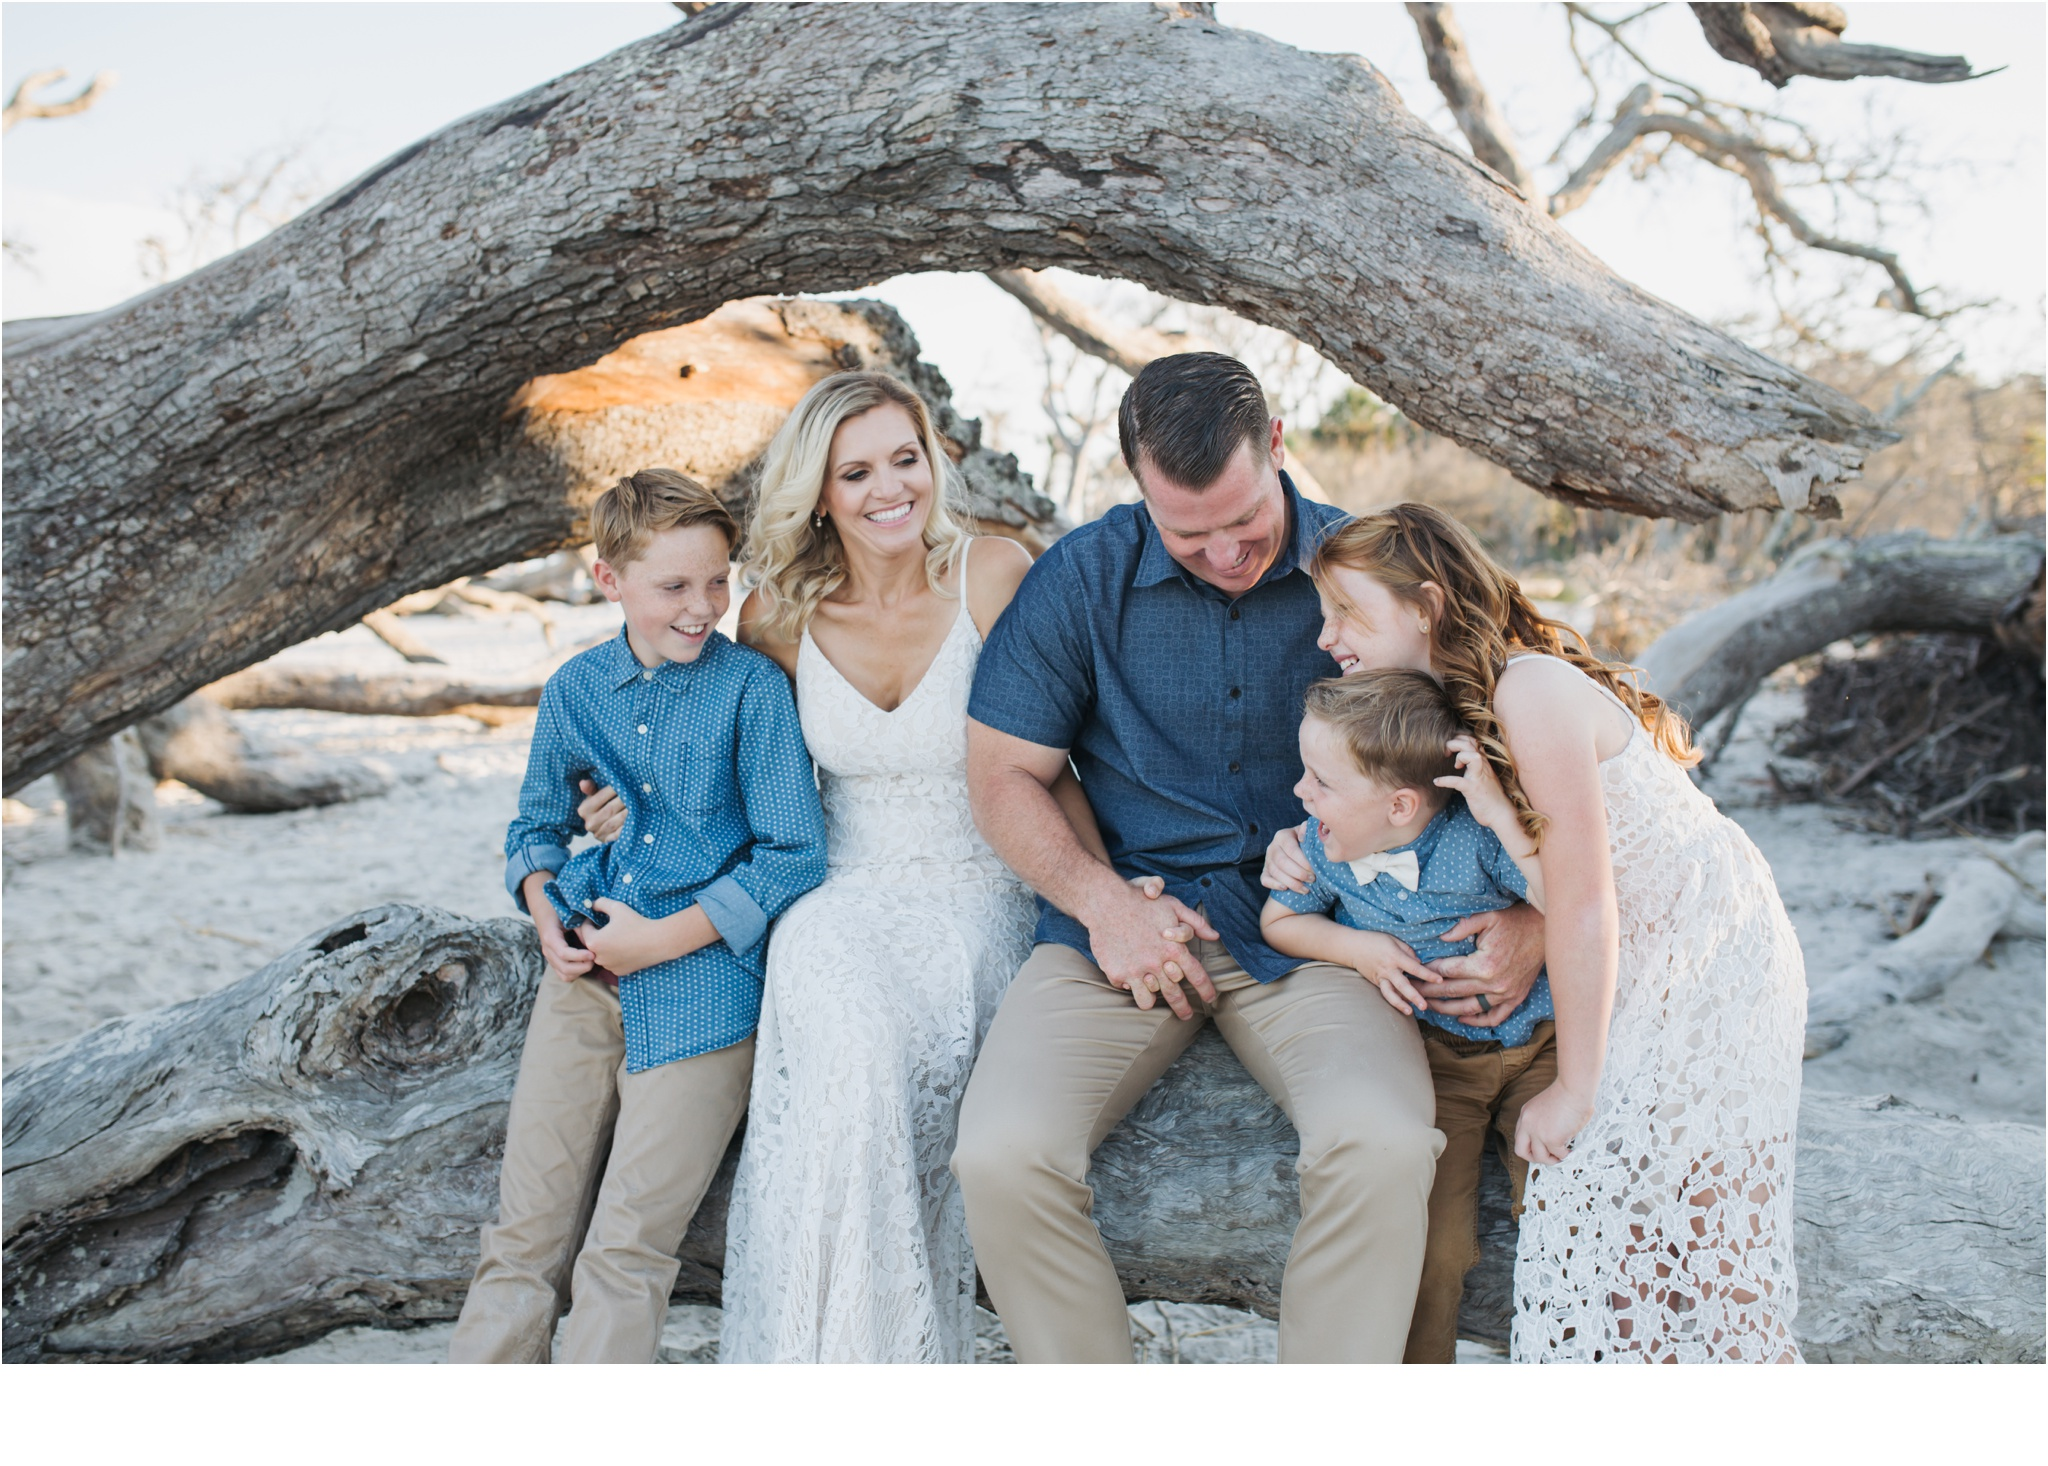 Rainey_Gregg_Photography_St._Simons_Island_Georgia_California_Wedding_Portrait_Photography_1587.jpg